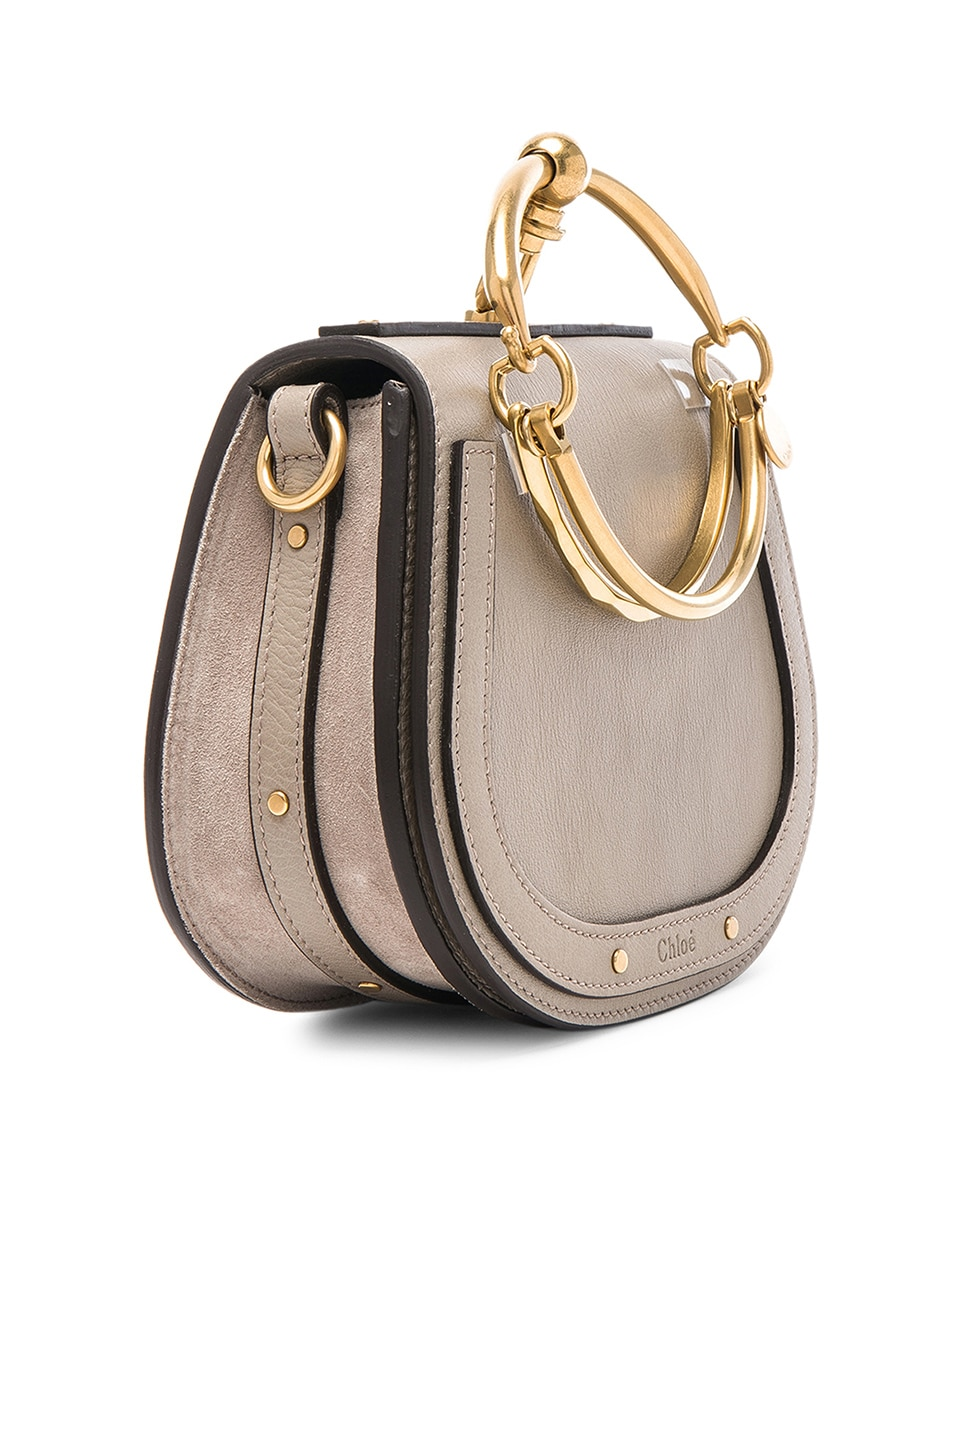 Image 4 of Chloe Small Nile Bracelet Bag Calfskin & Suede in Motty Grey